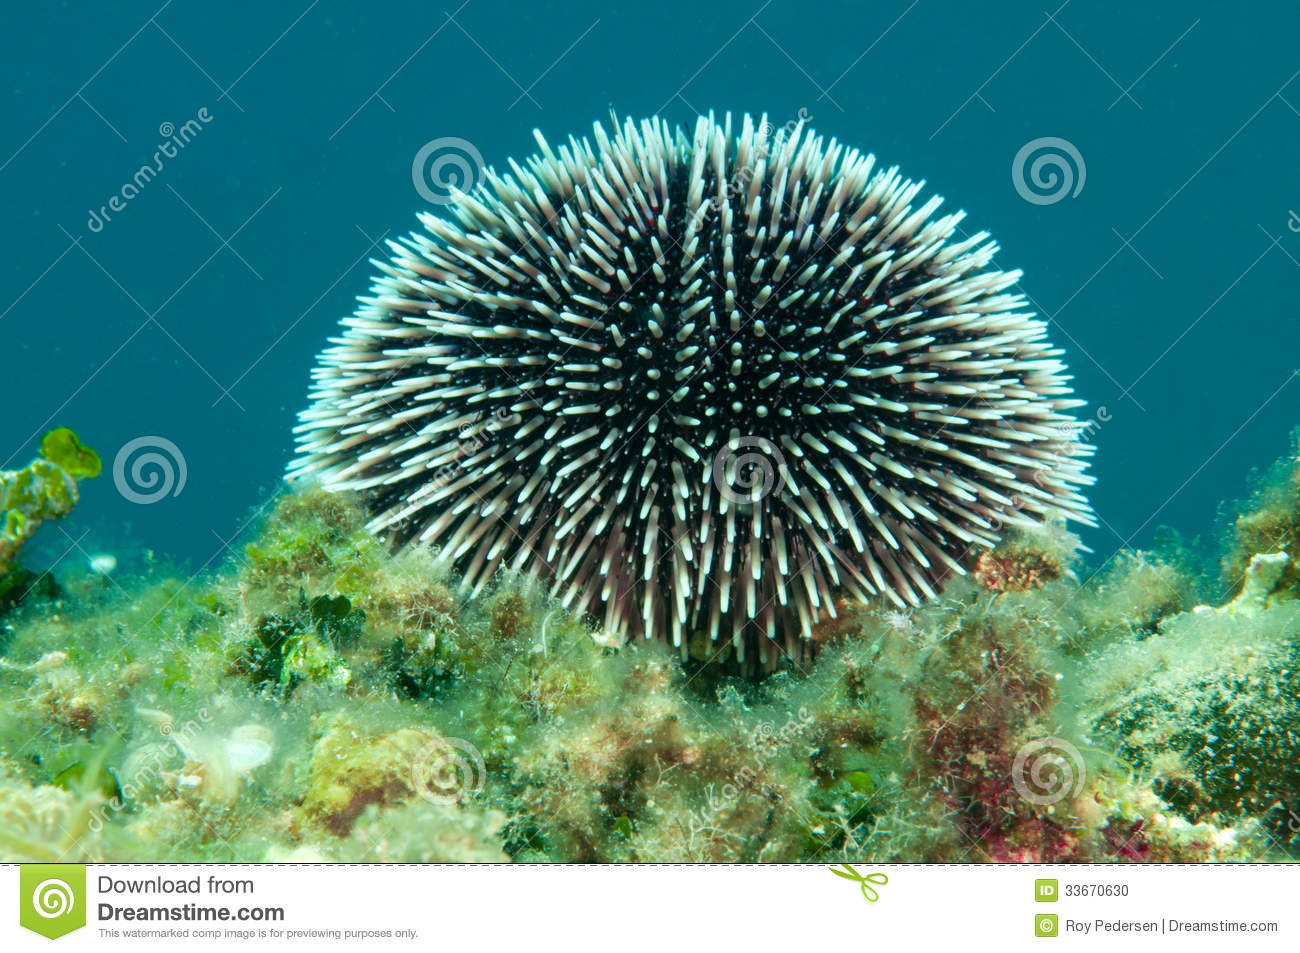 Urchin Spines Stock Photo - Image: 33670630